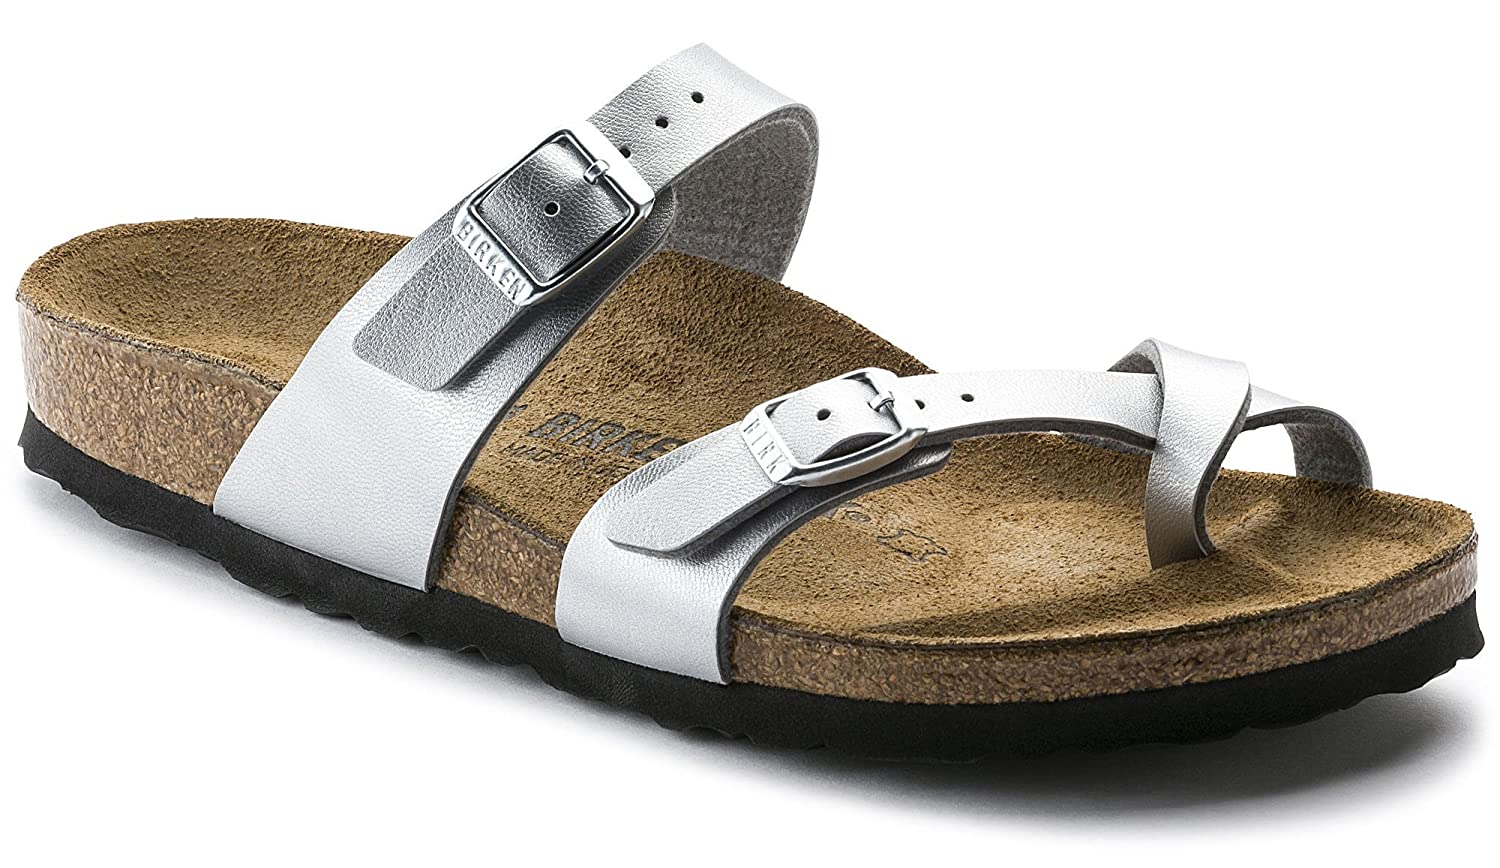 M New Style 40 M EU // 9-9.5 B Mayari US Women Cork-Footbed Flat Sandals in Silver Womens